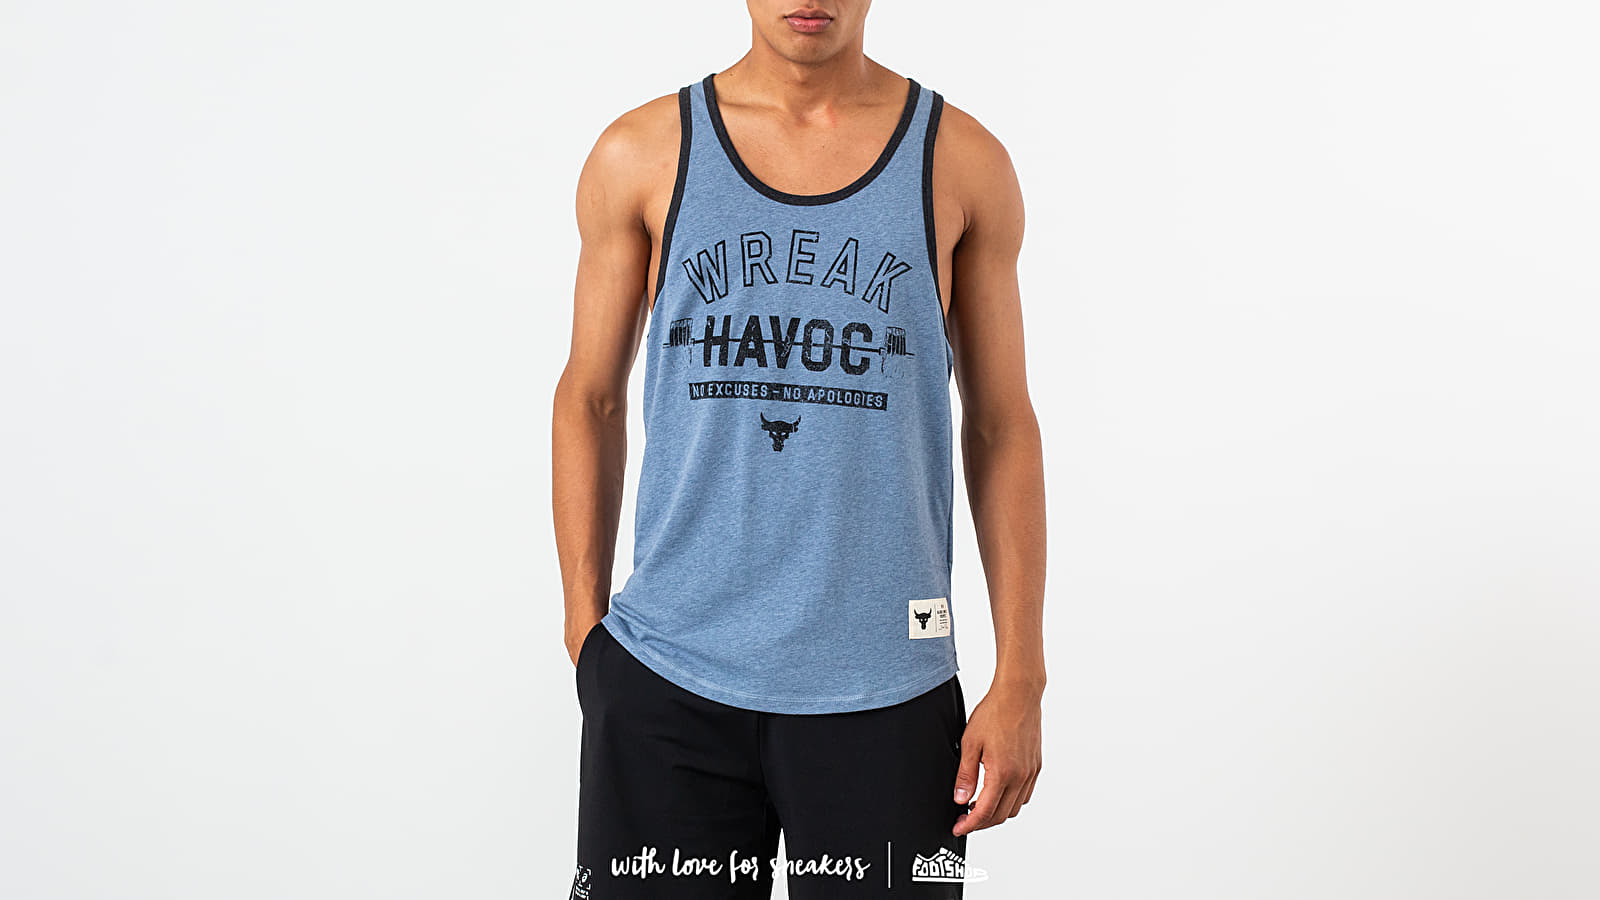 Under Armour Project Rock Wreak Havoc Tank